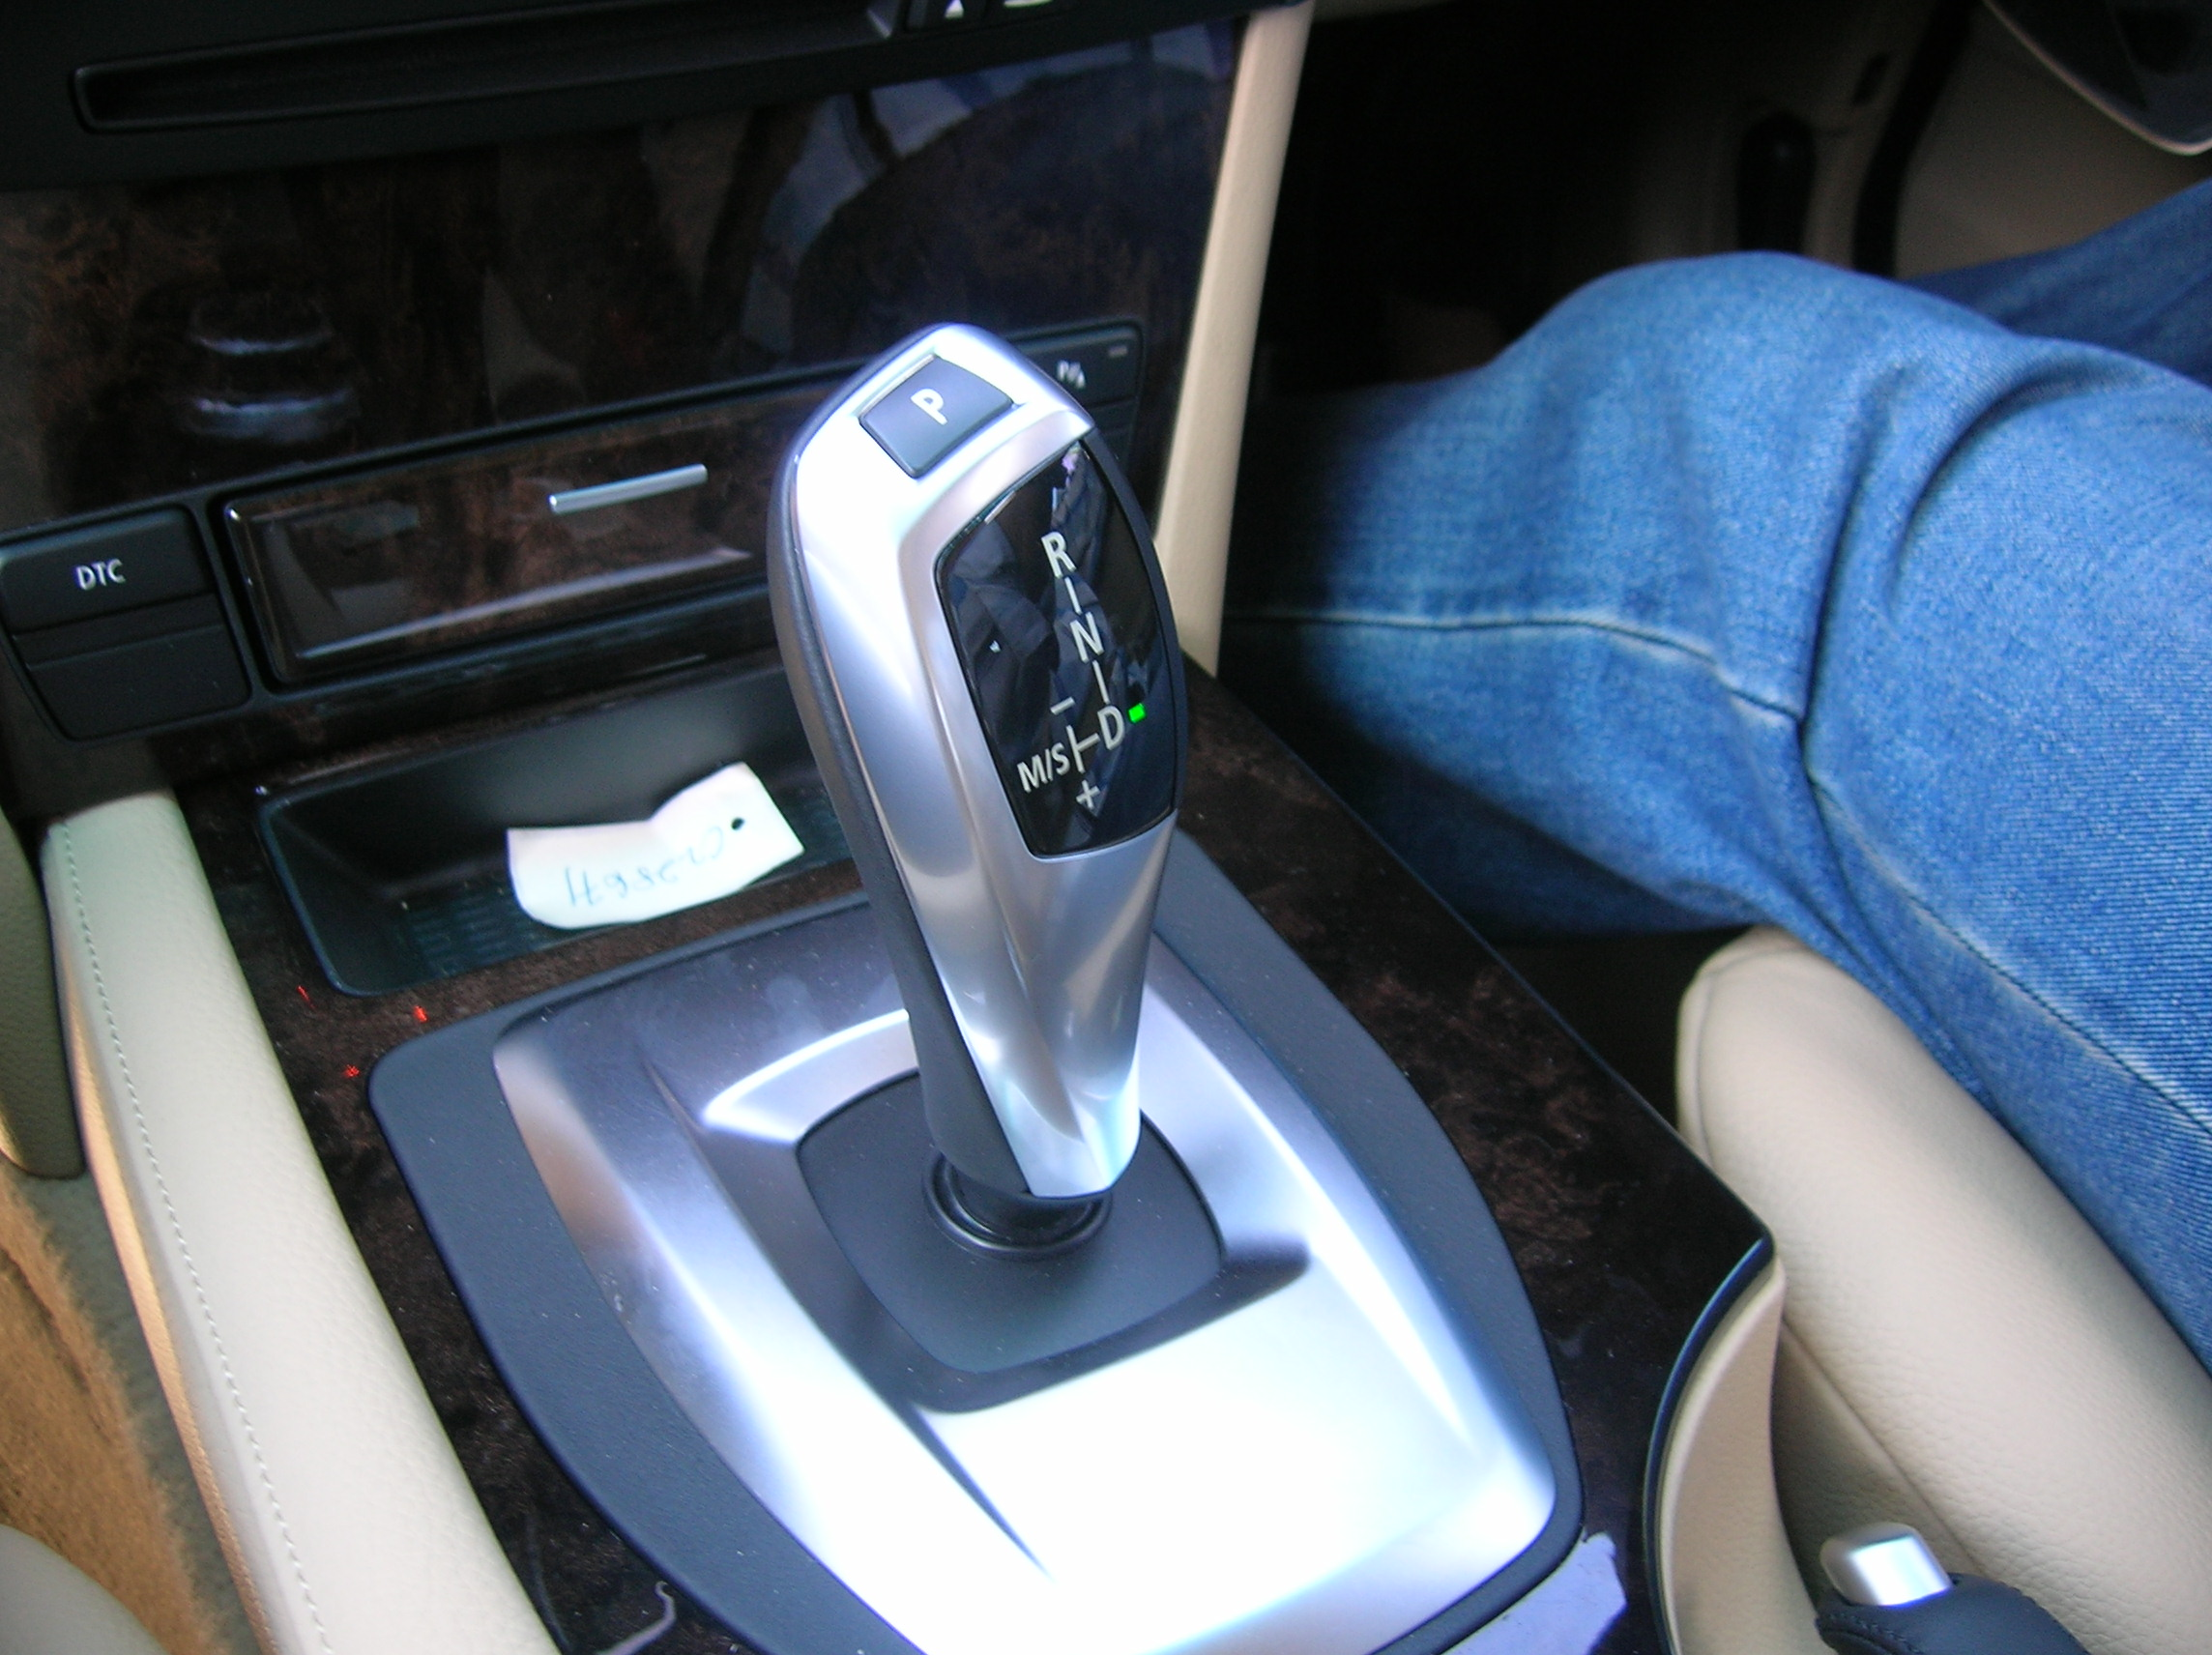 An example of good ergonomics, this gearstick is easy to grip, and intuitive to operate (once you get it)